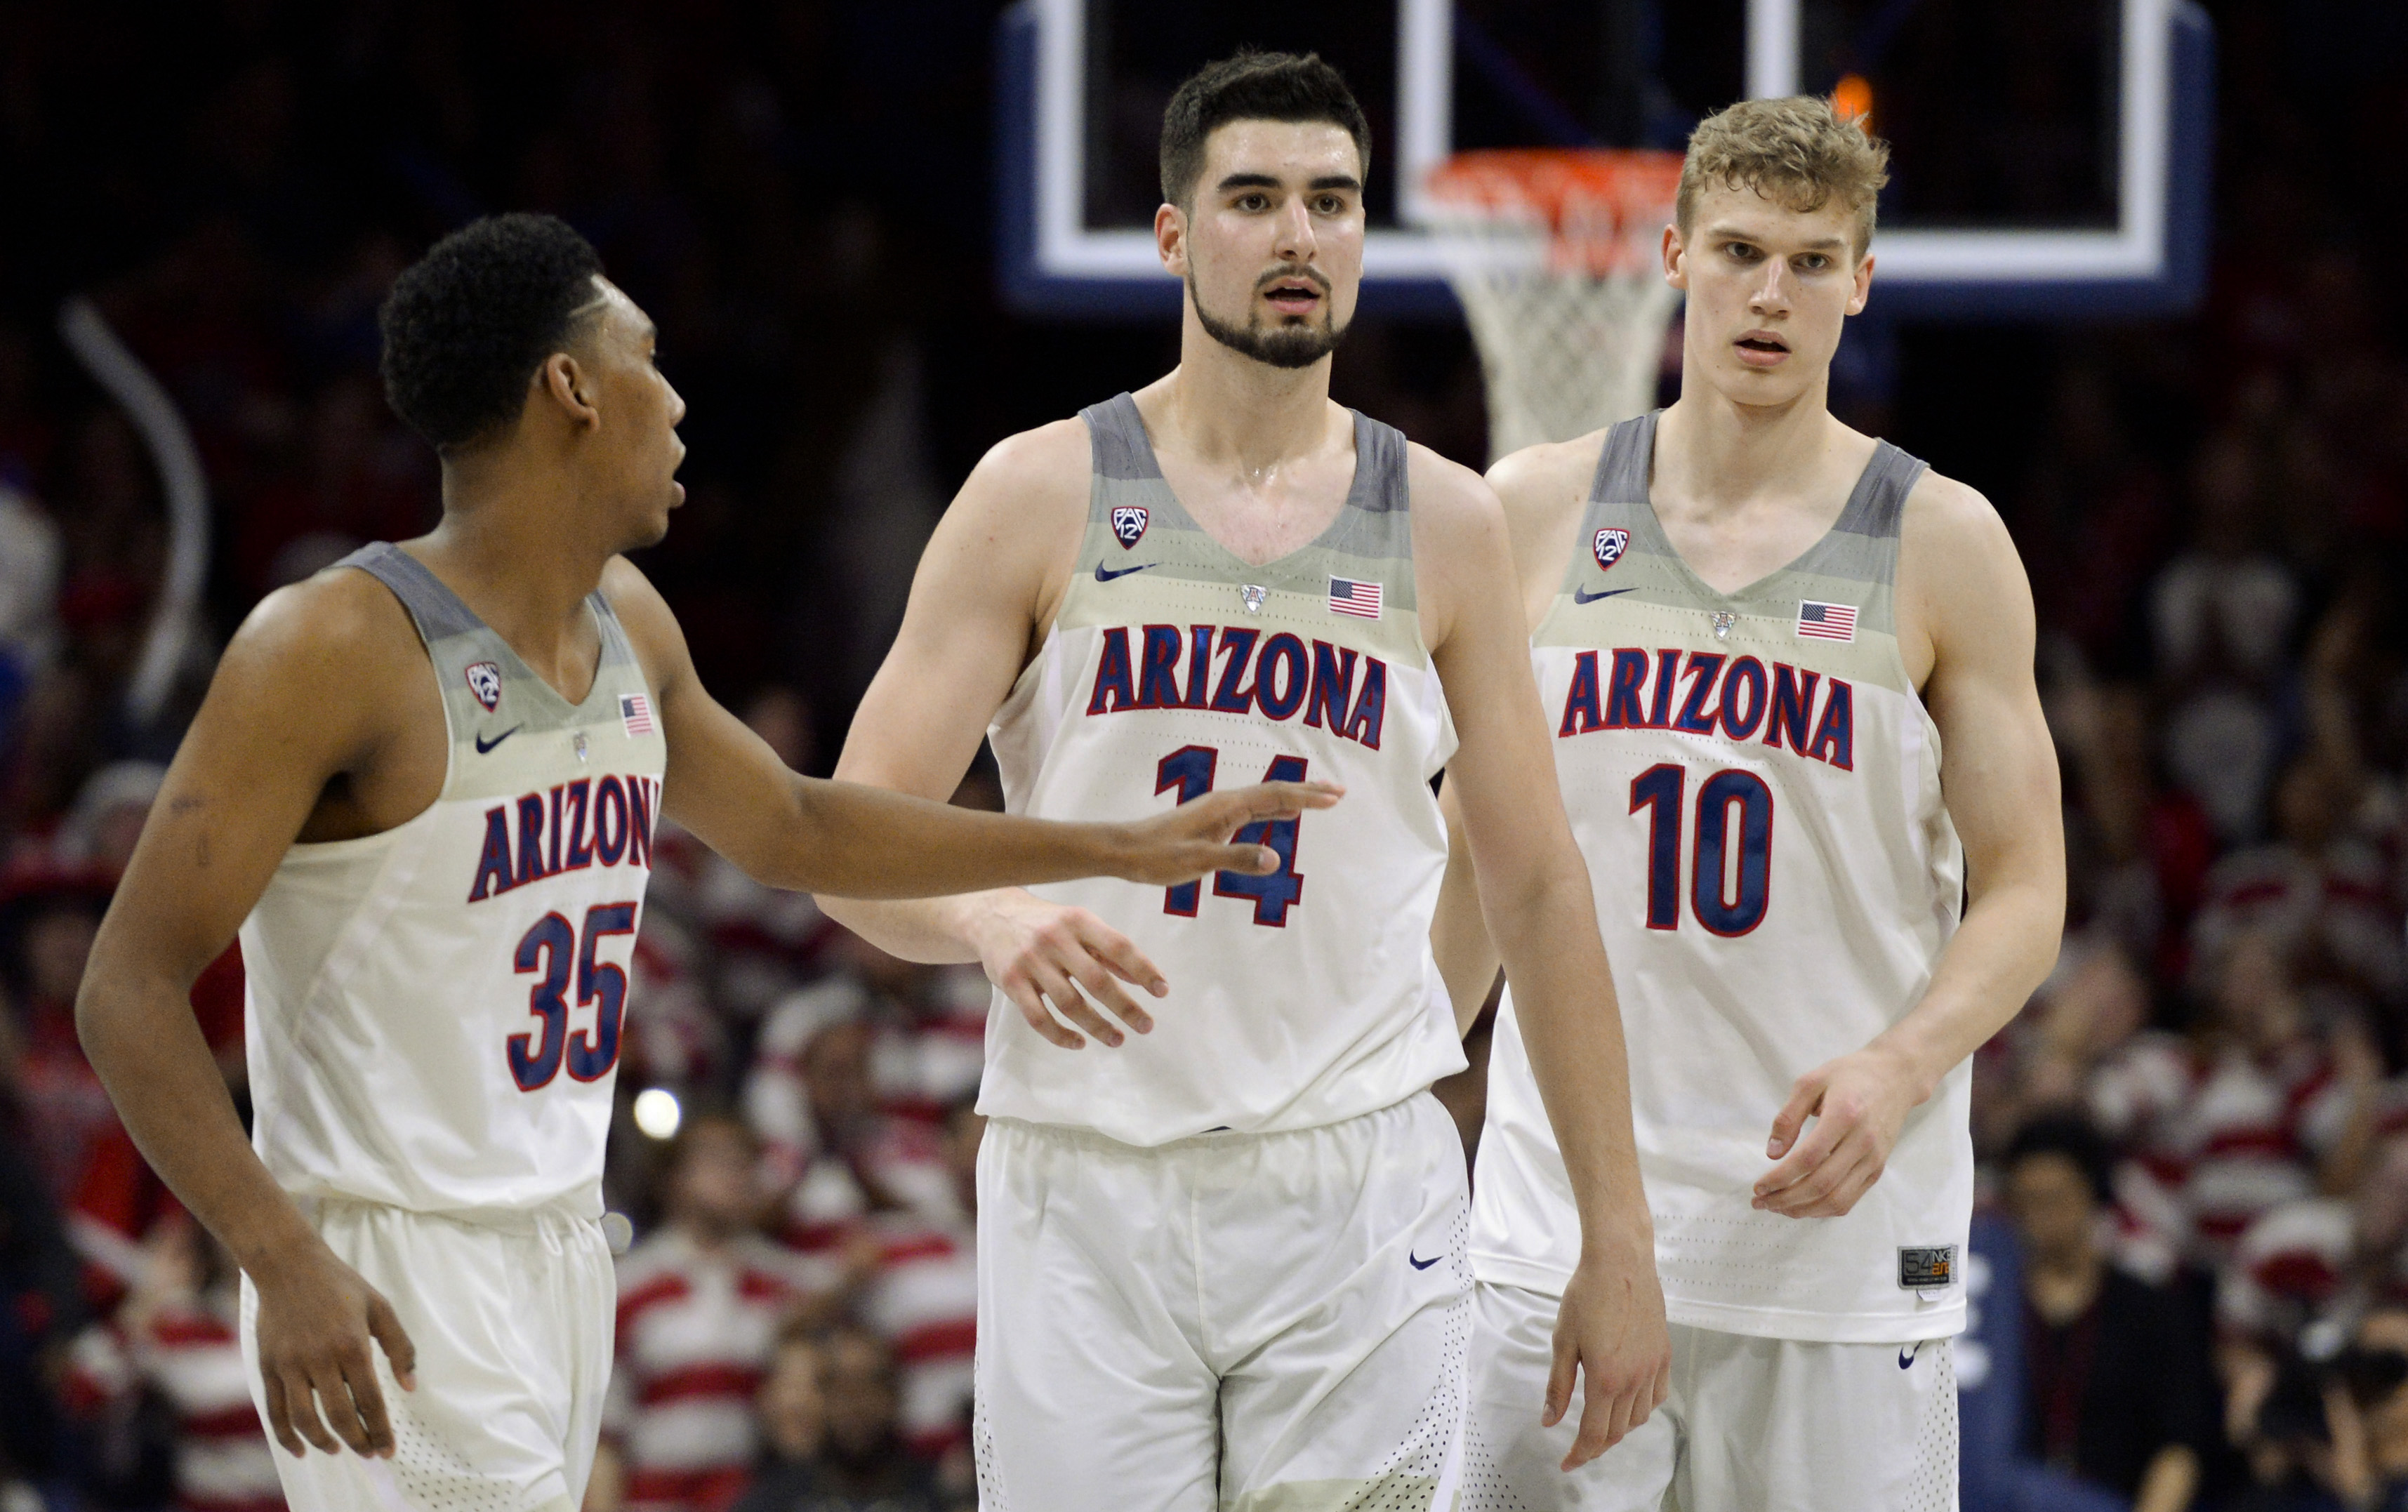 Feb 8, 2017; Tucson, AZ, USA; Arizona Wildcats guard Allonzo Trier (35) and center Dusan Ristic (14) and forward Lauri Markkanen (10) walk up court during the second half against the Stanford Cardinal at McKale Center. Arizona won 74-67. Mandatory Credit: Casey Sapio-USA TODAY Sports